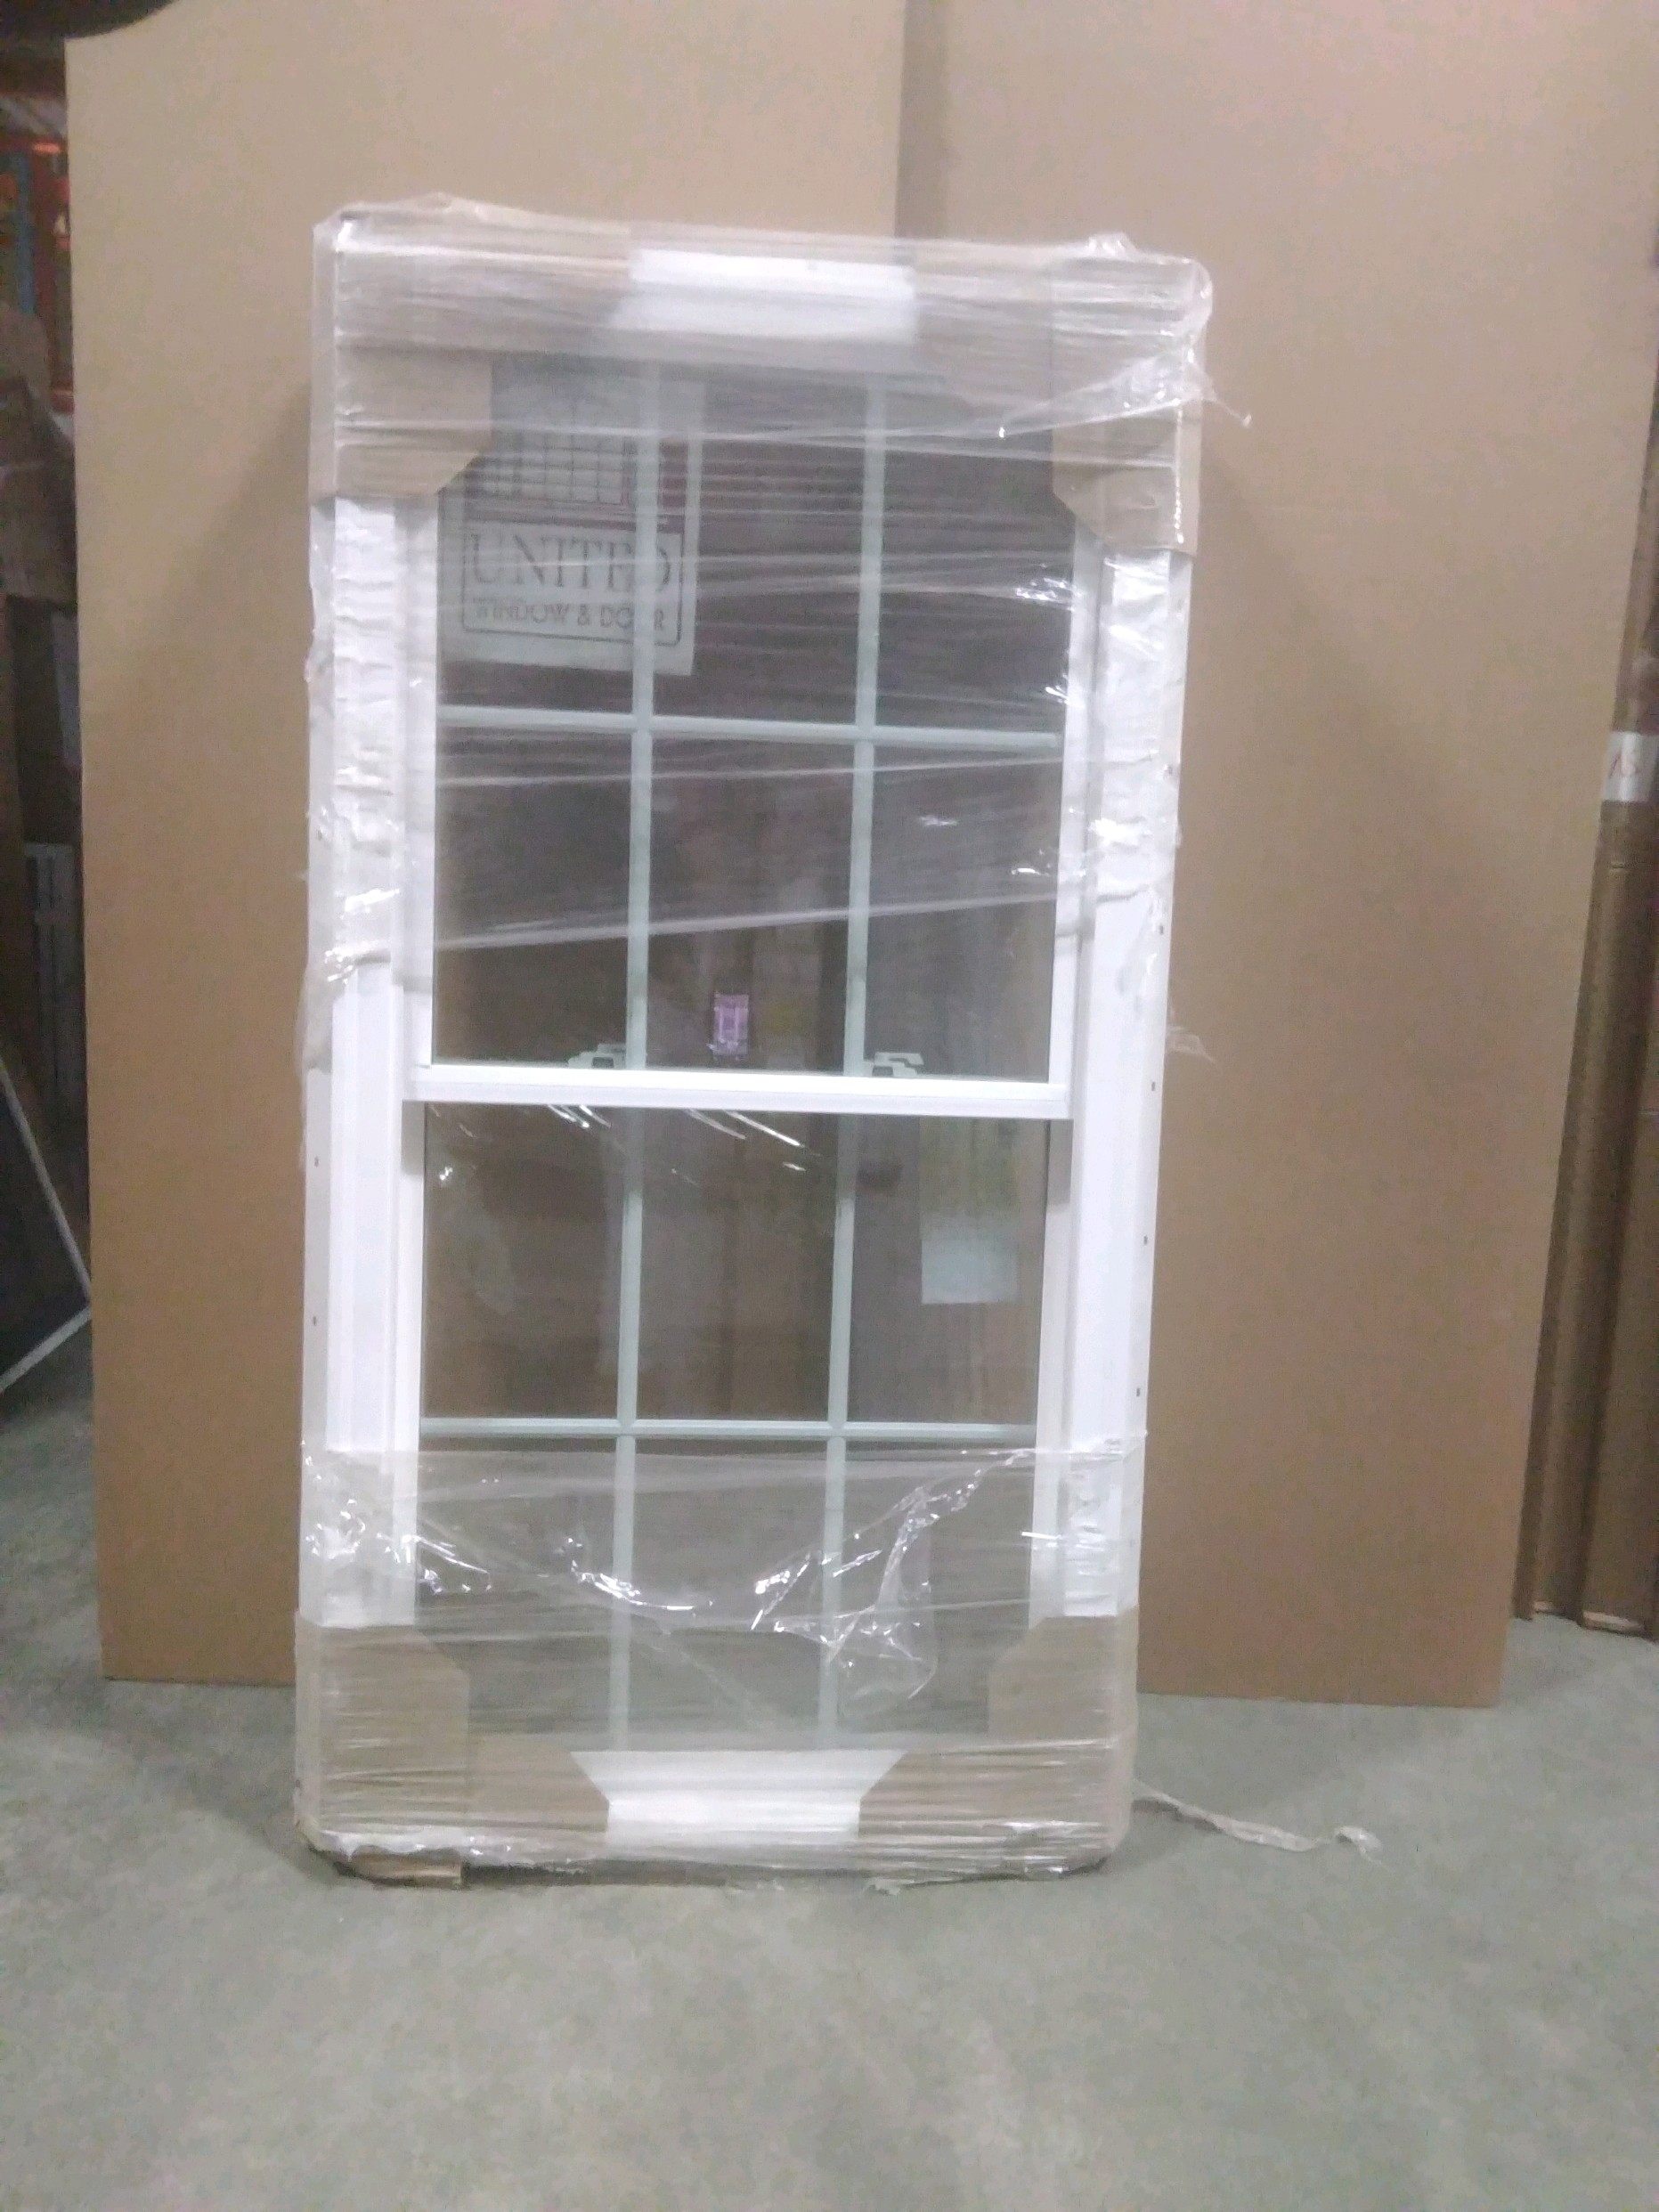 United 29 1/2 x 56 3/4 Vinyl Window